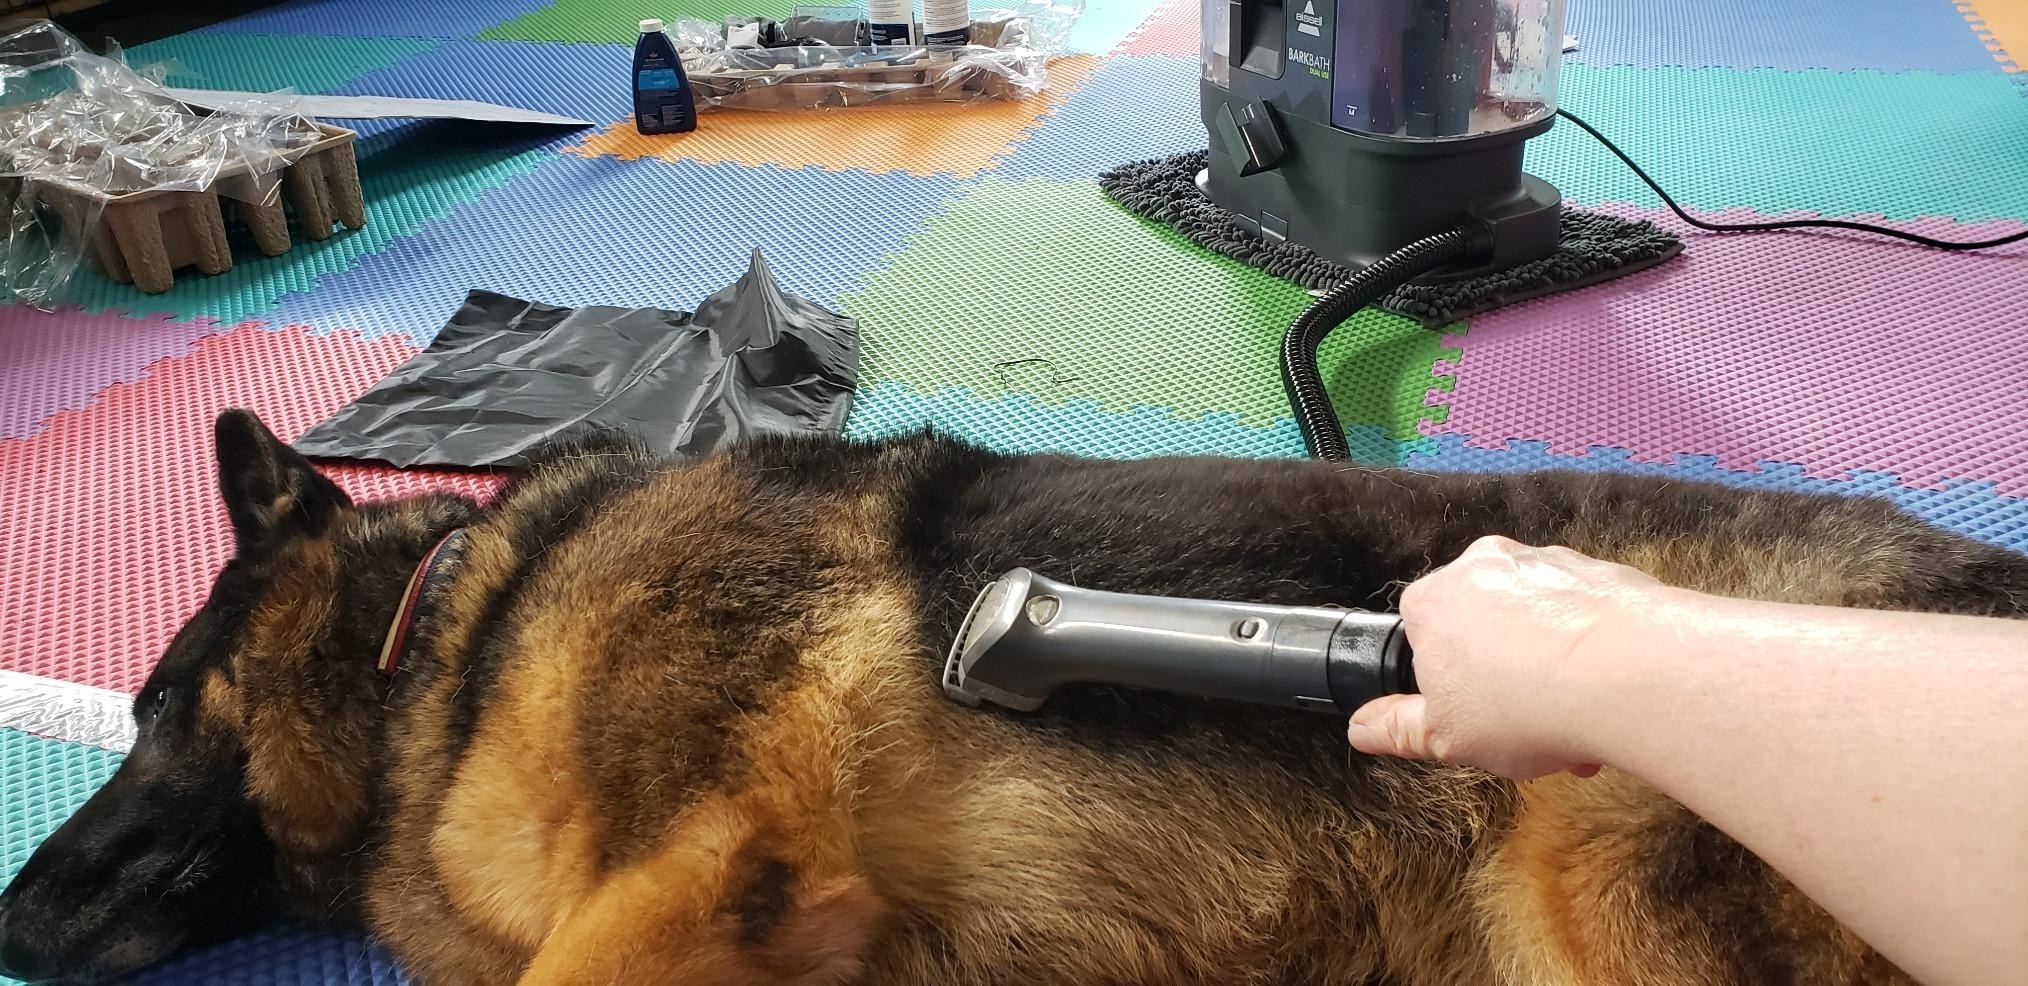 A reviewer uses the machine to clean their dog